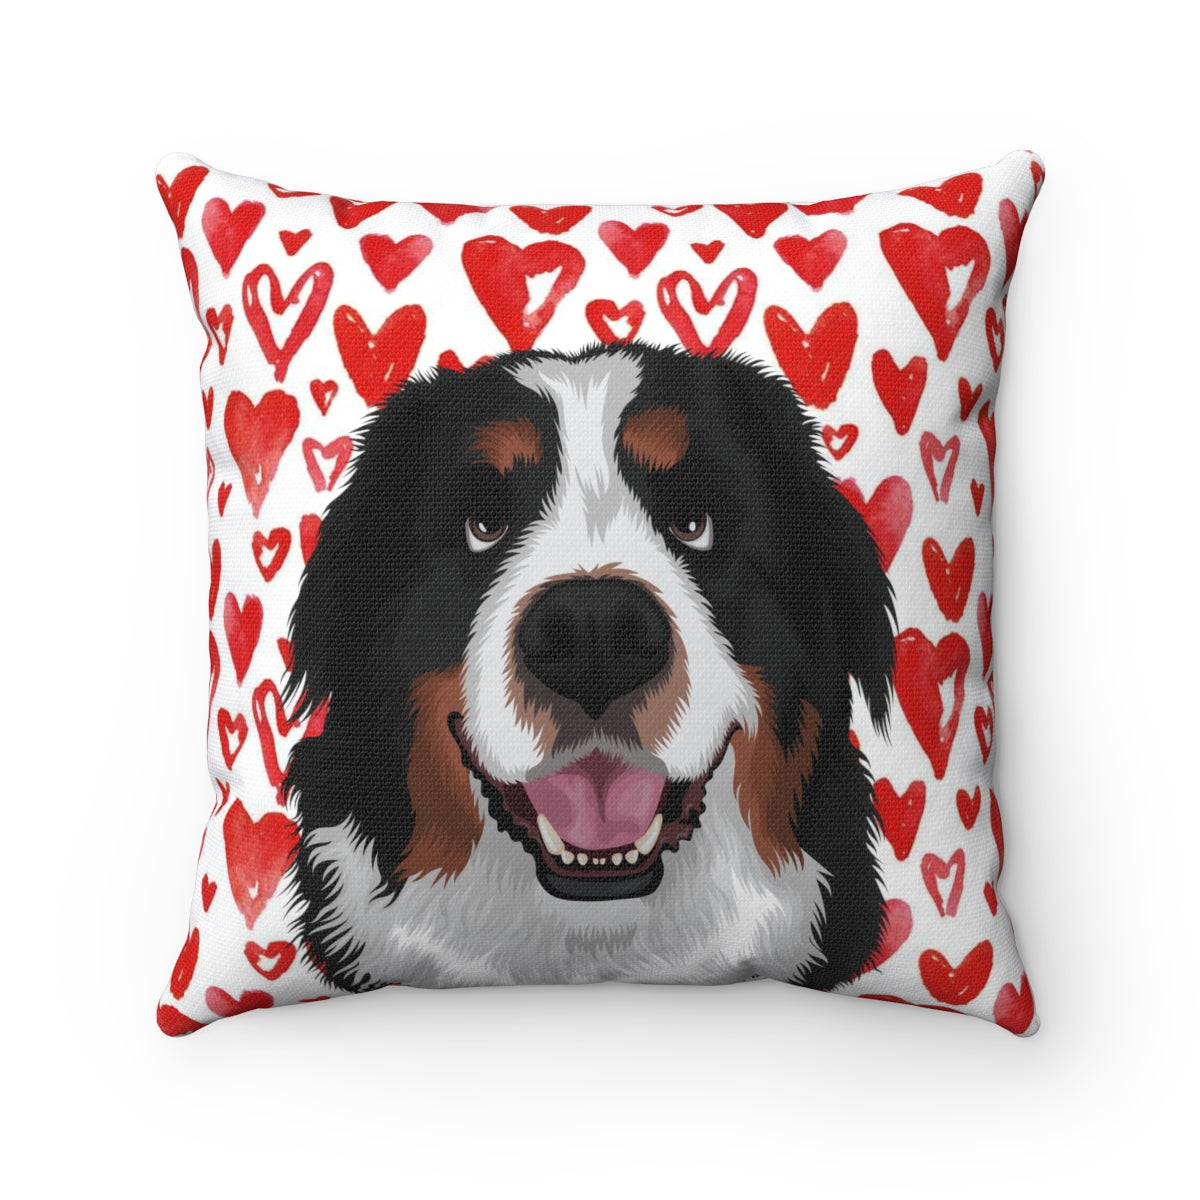 Valentine's Edition Pet Portrait Cushion